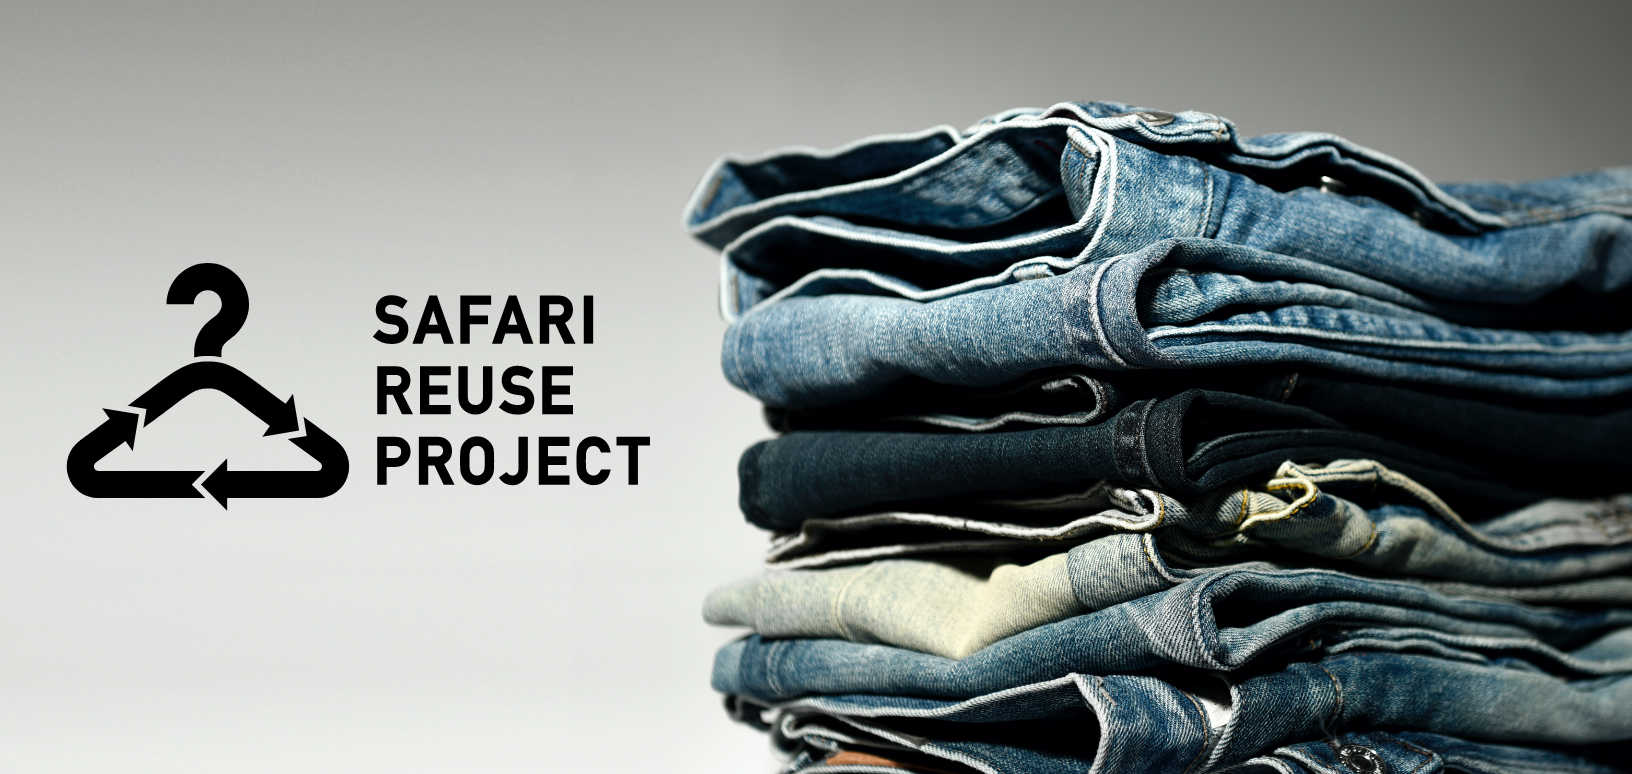 SAFARI REUSE PROJECT